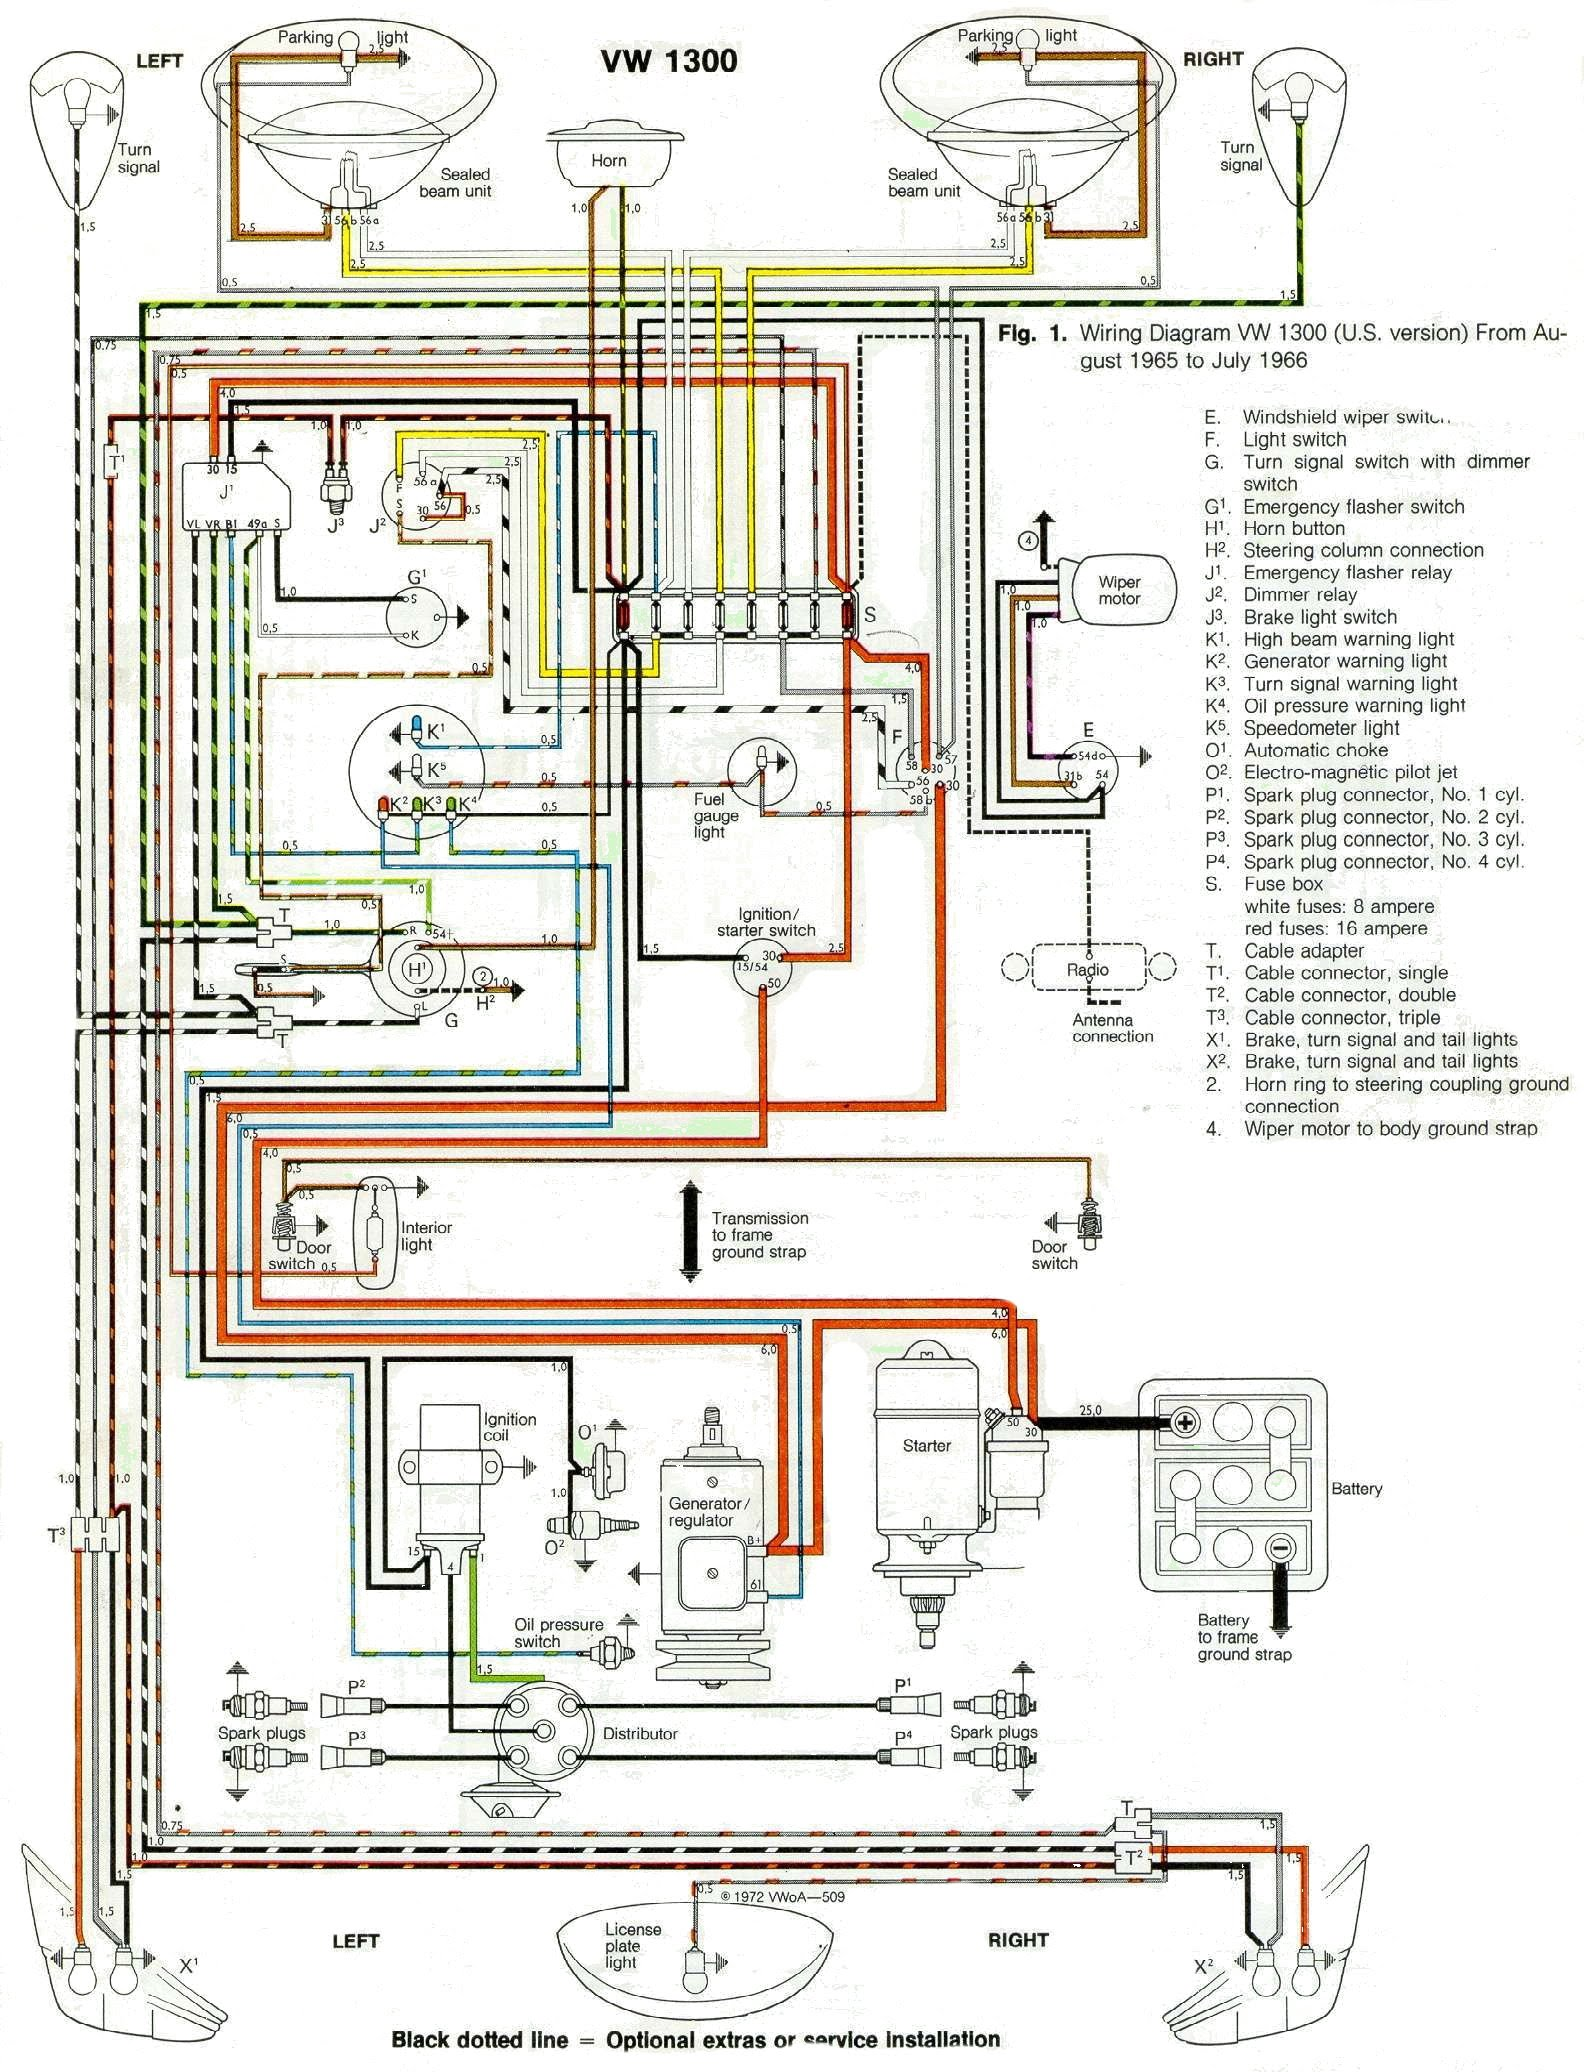 1965 volkswagen 1300 city car wiring diagram diagrams 19191168 vw golf wiring diagram electrical wiring vw citi golf wiring diagram at bayanpartner.co